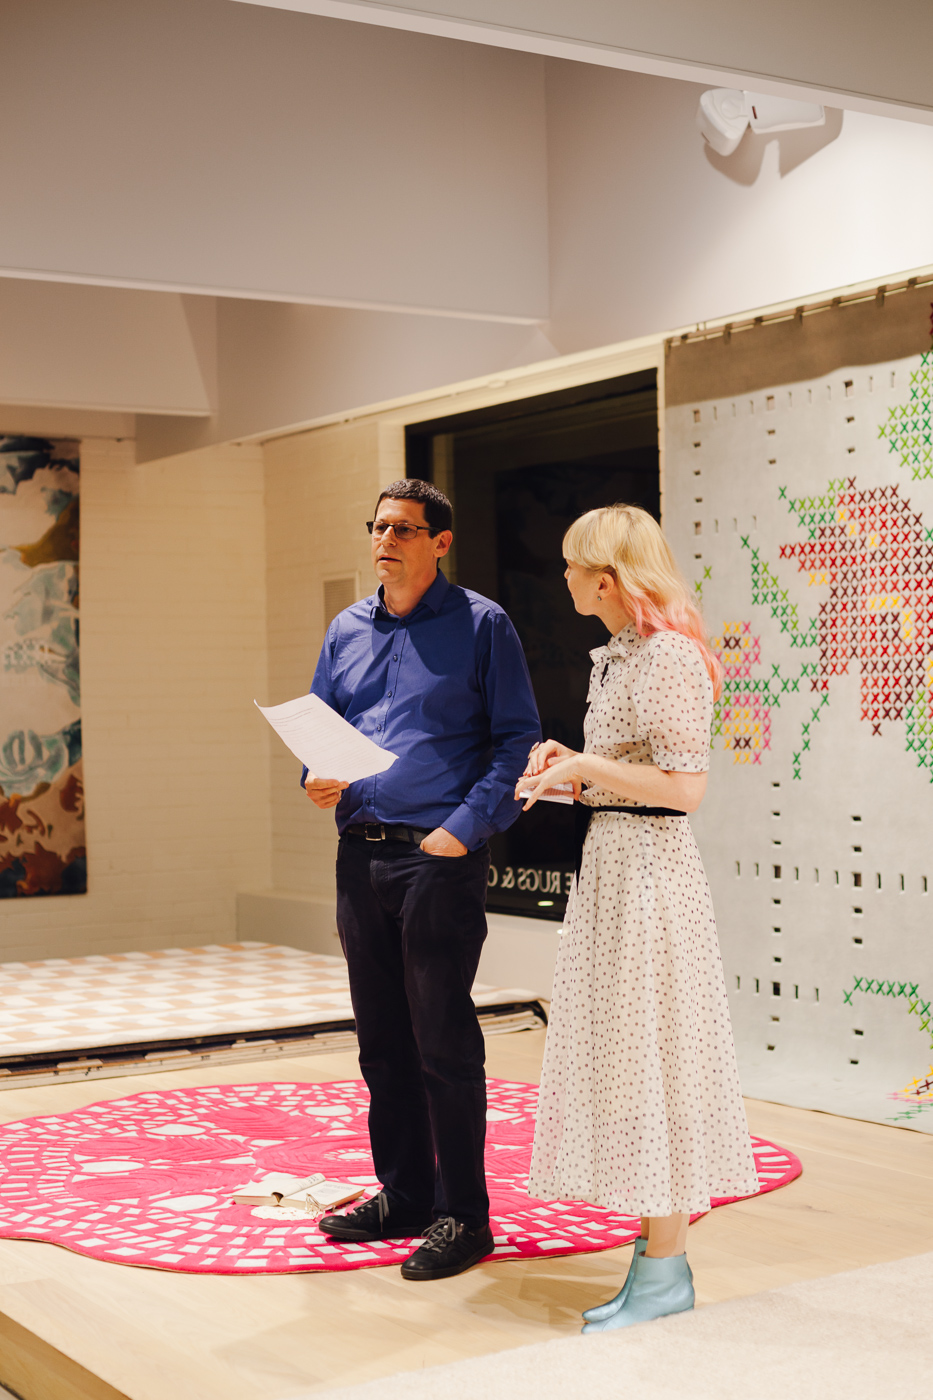 Petrina Turner & Yosi Tal | NEW AGAIN by Petrina Turner Design for Designer Rugs | The launch event